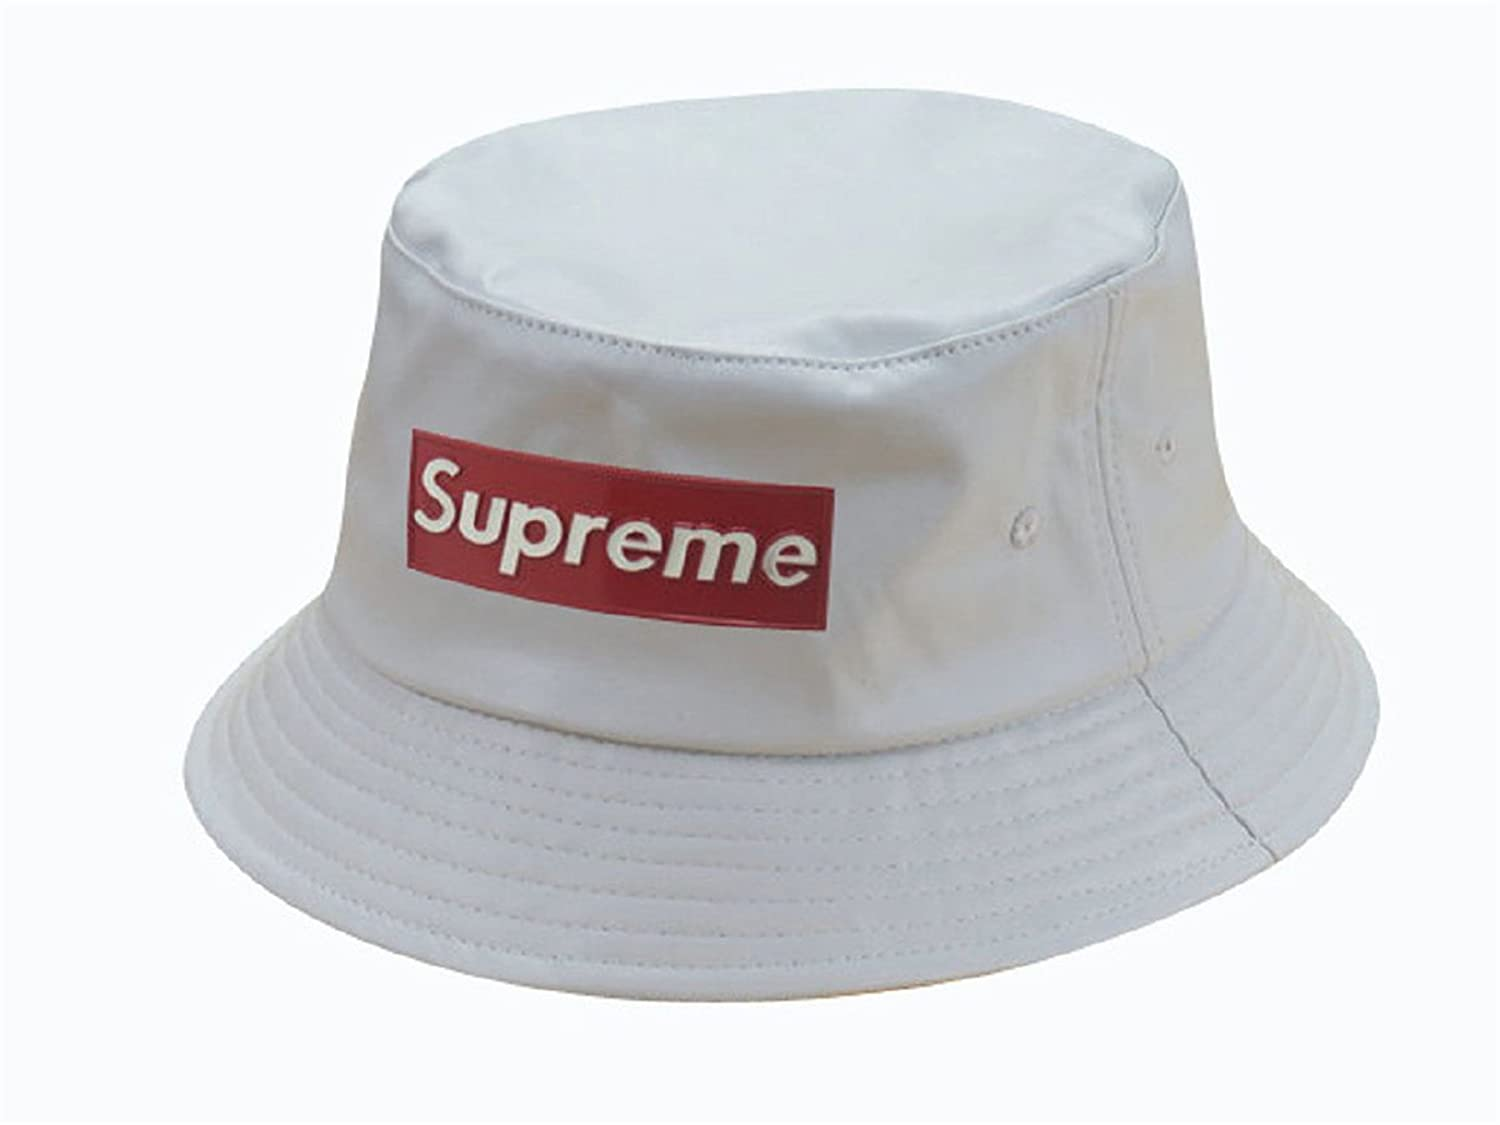 Supreme Hats For Sale Amazon d7b622fd39f